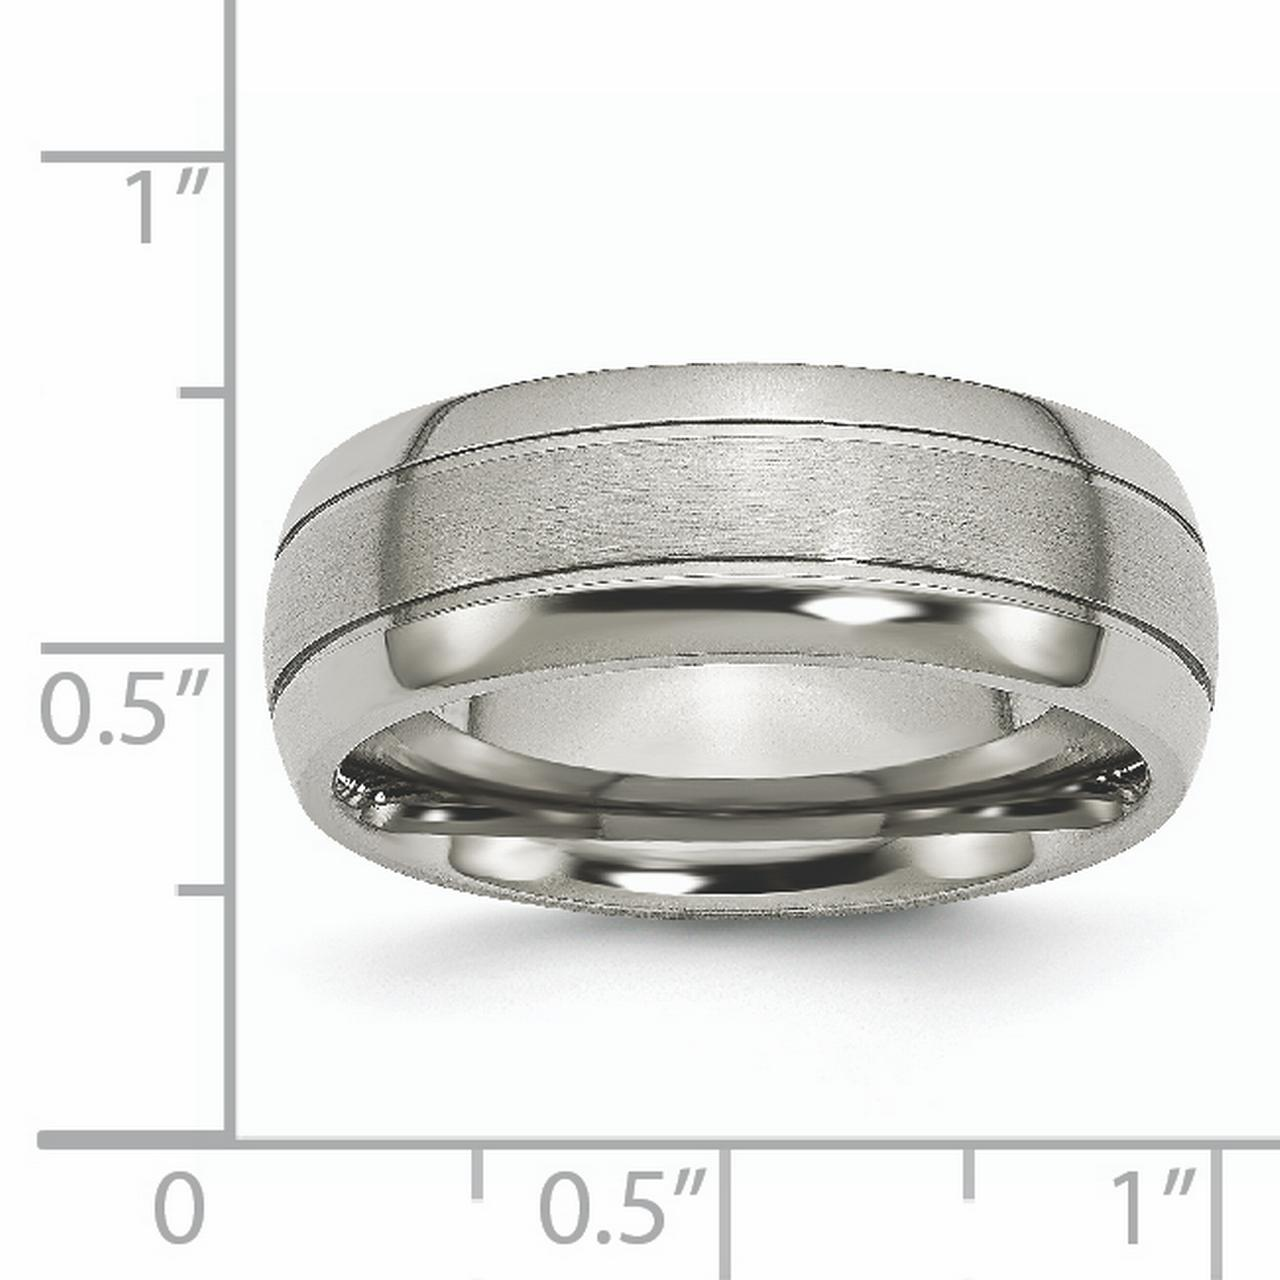 Titanium Grooved 8mm Brushed Wedding Ring Band Size 14.50 Fashion Jewelry Gifts For Women For Her - image 5 de 6